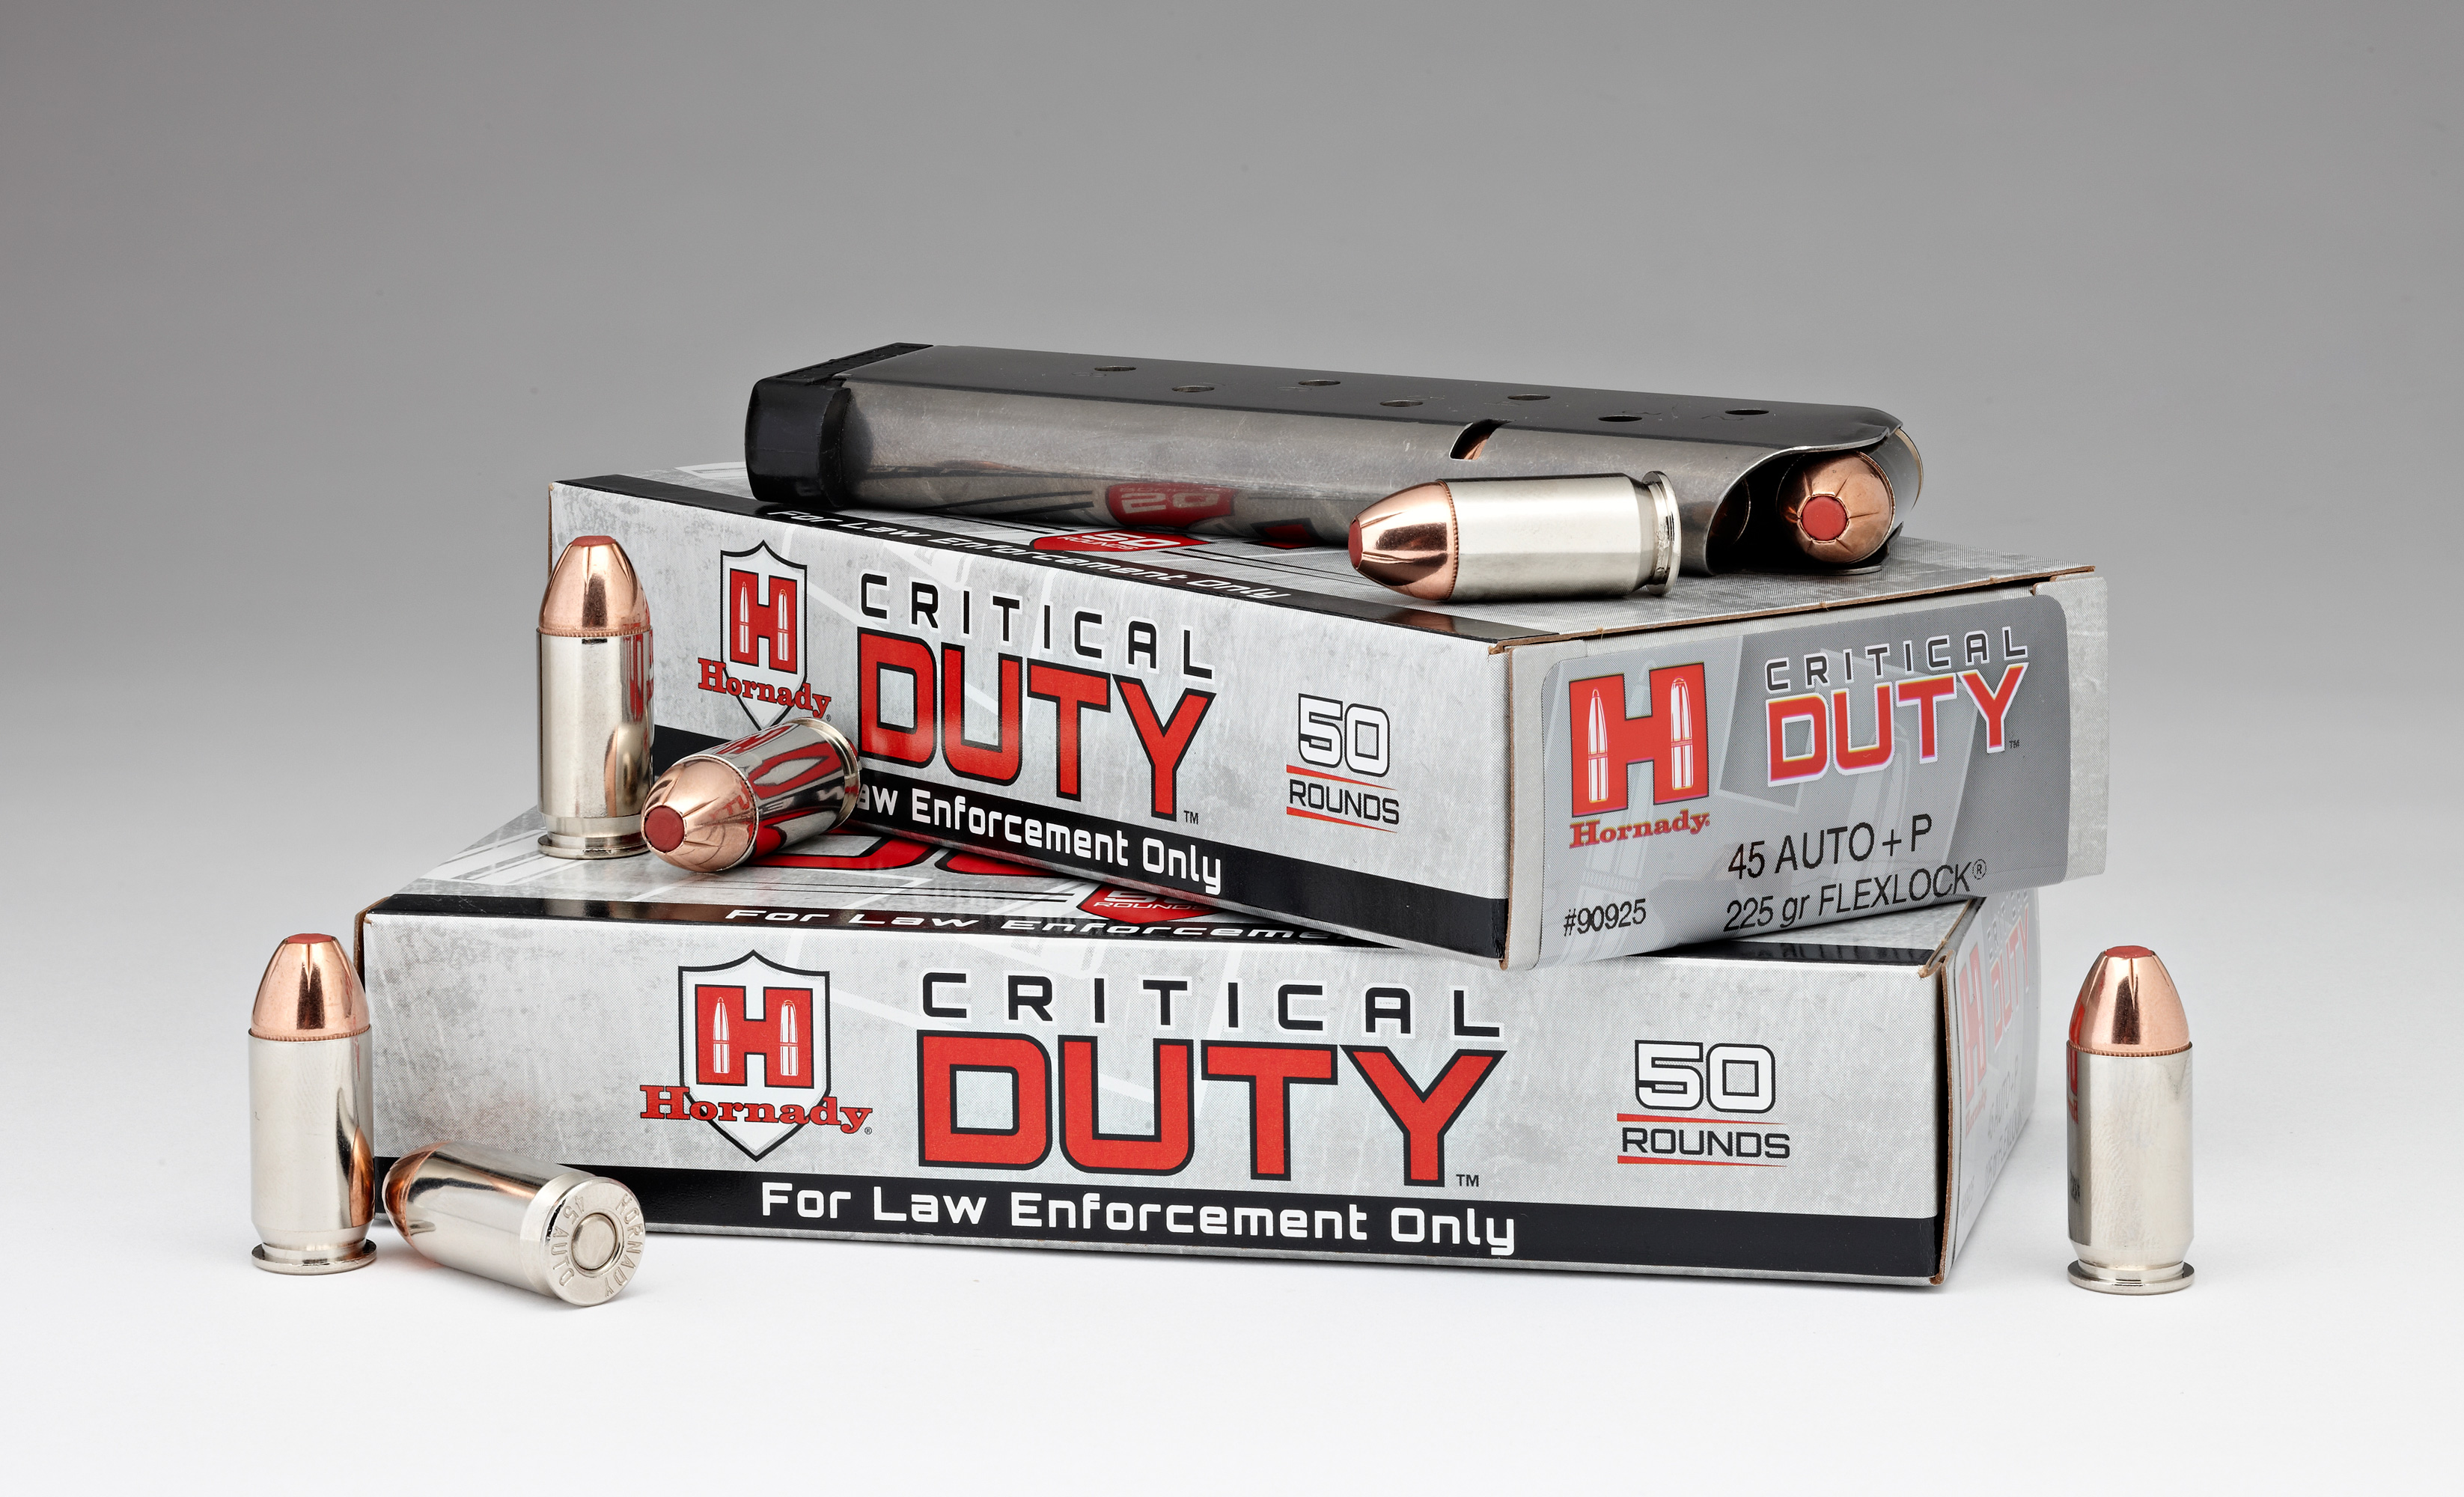 //www.gunsandammo.com/files/fathers-day-gifts-for-the-tactical-dad/90925-45-auto_p-225gr-critical-duty-law-enforcement-packaging.jpg